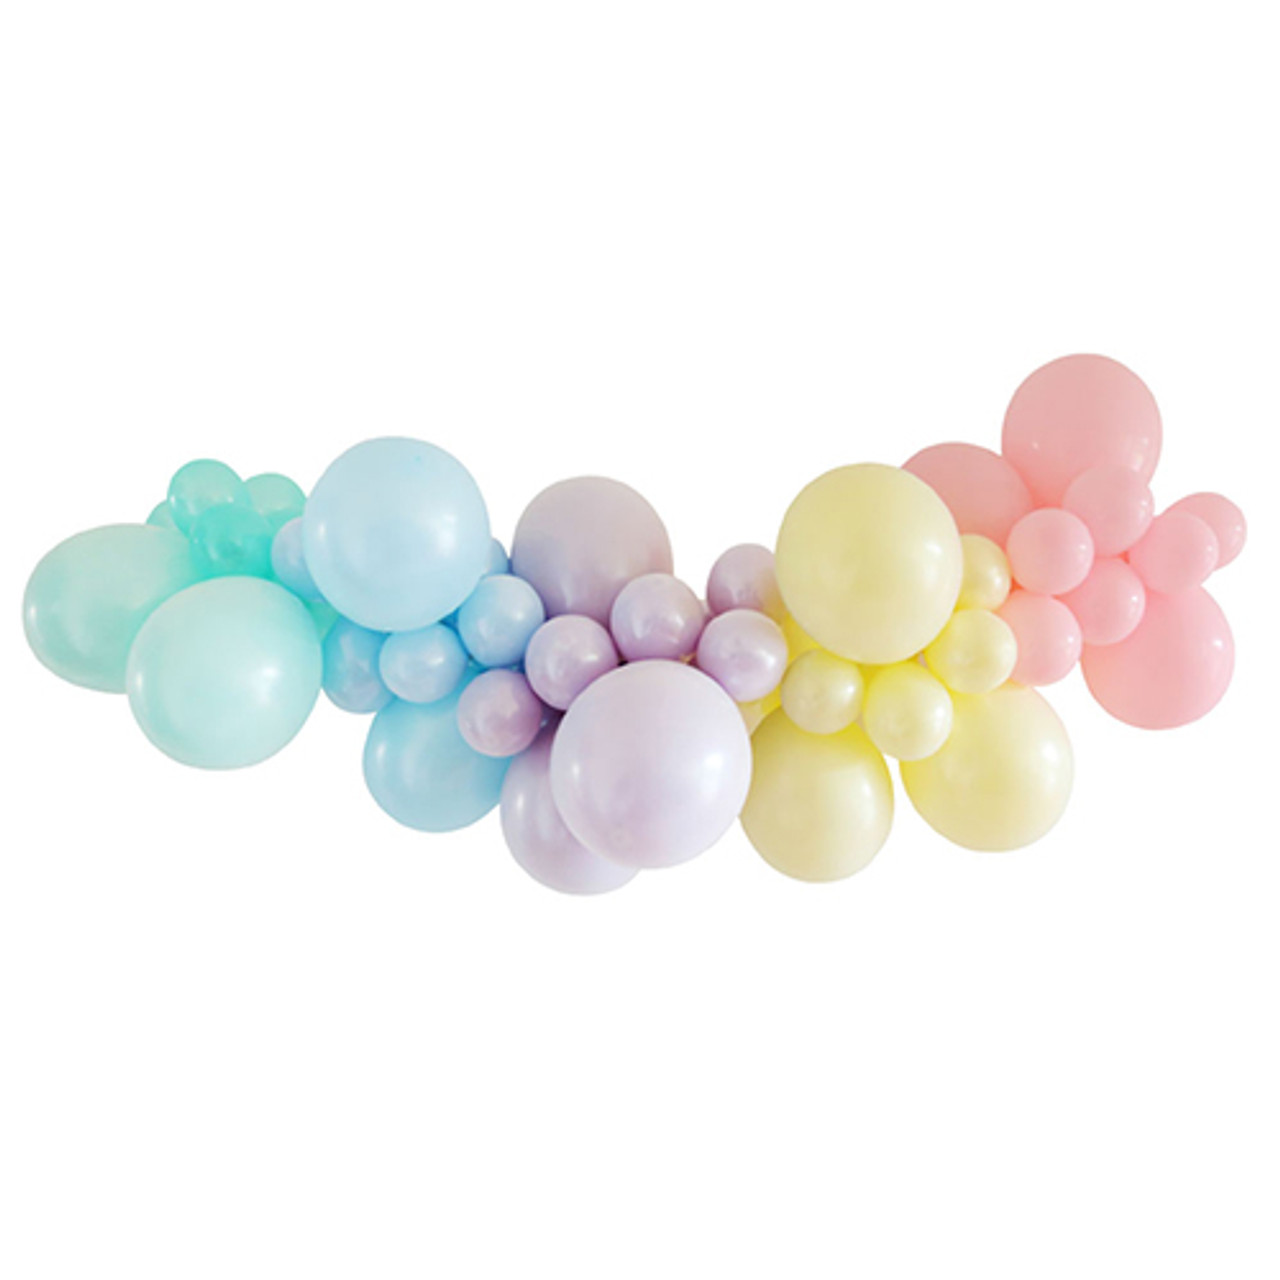 Balloon Garland Diy Kit Pastel Discount Party Warehouse